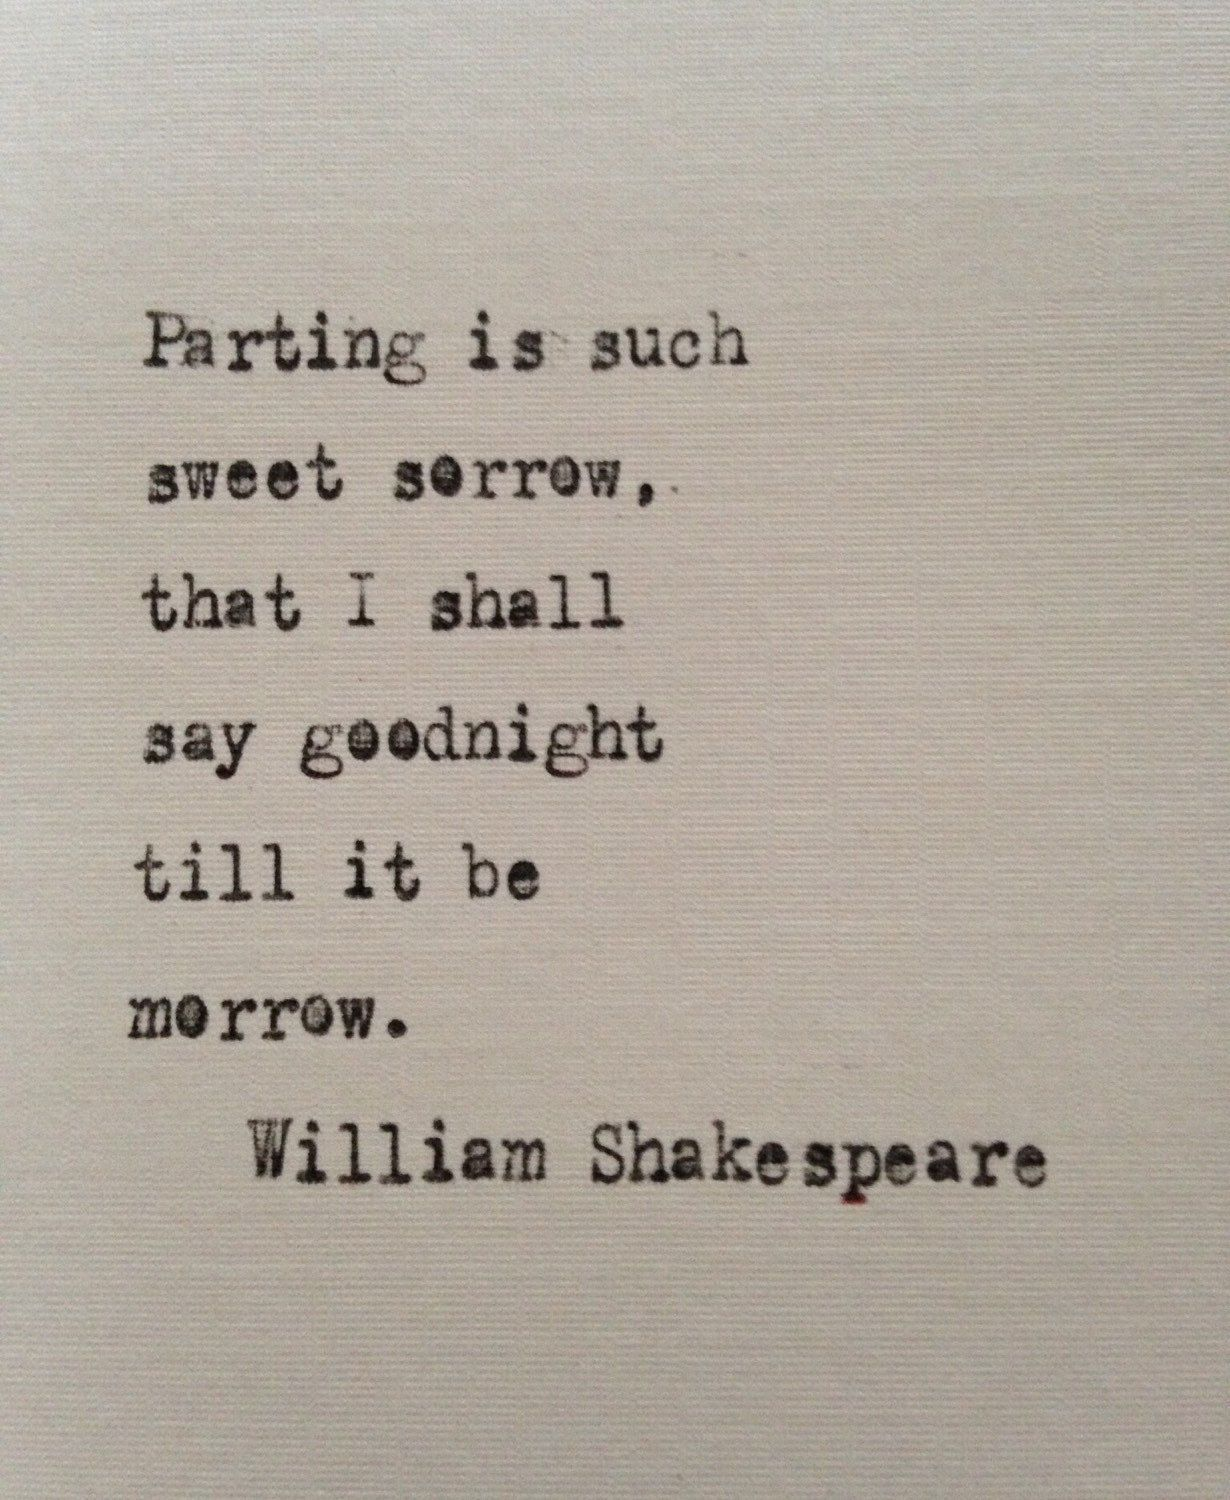 Shakespeare Romeo And Juliet Quotes Stunning William Shakespeare Love Quote Romeo And Juliet Hand Typed On